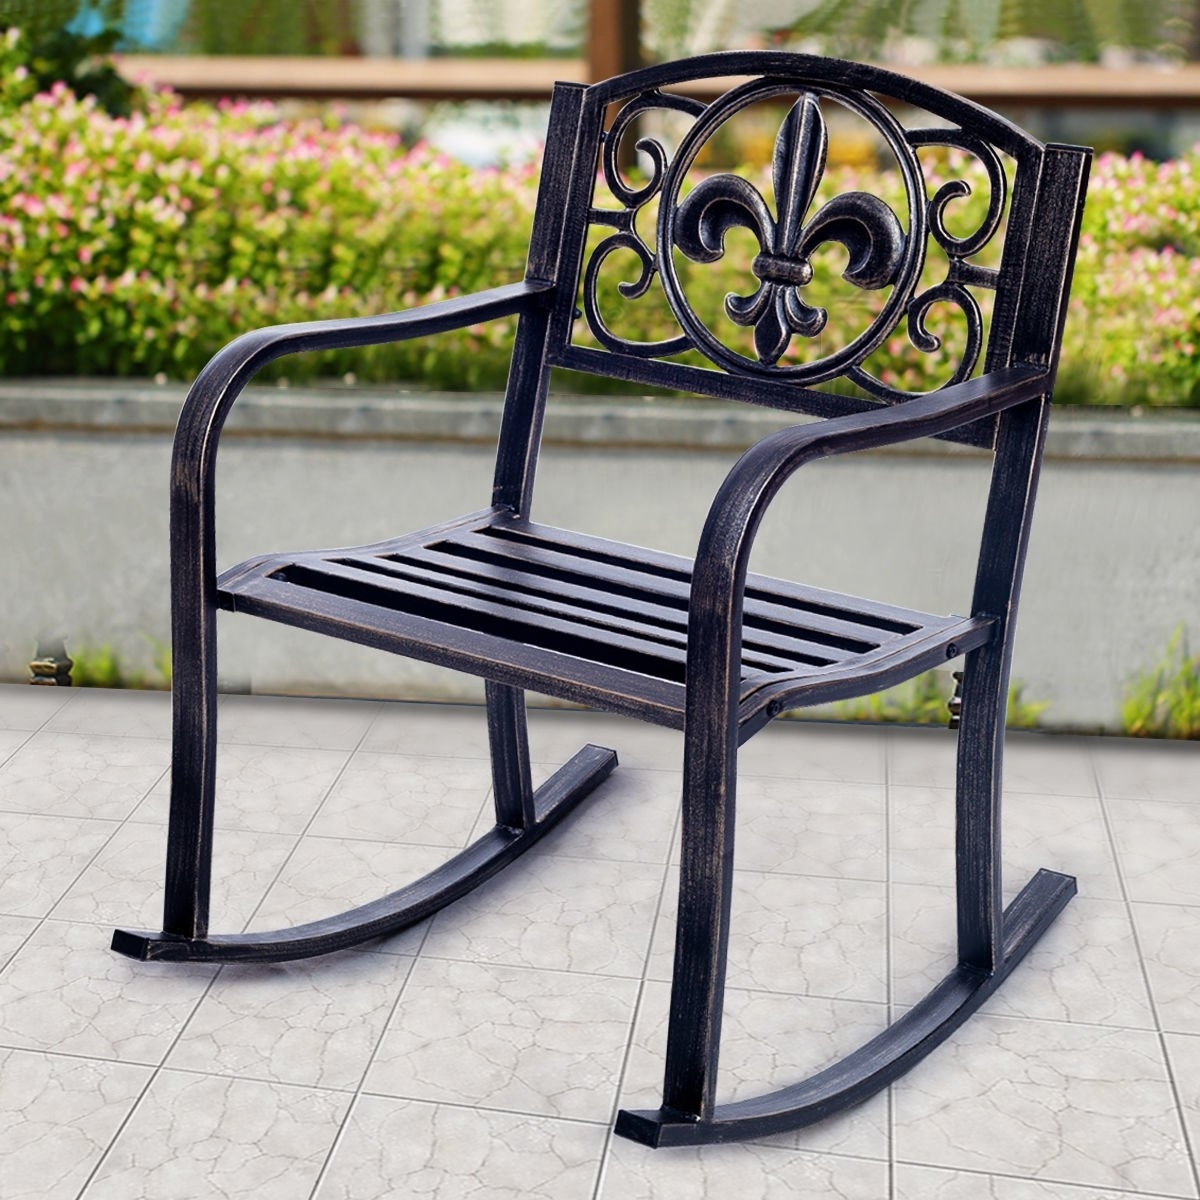 Patio Metal Rocking Chairs Intended For Best And Newest Costway: Costway Patio Metal Rocking Chair Porch Seat Deck Outdoor (View 13 of 20)